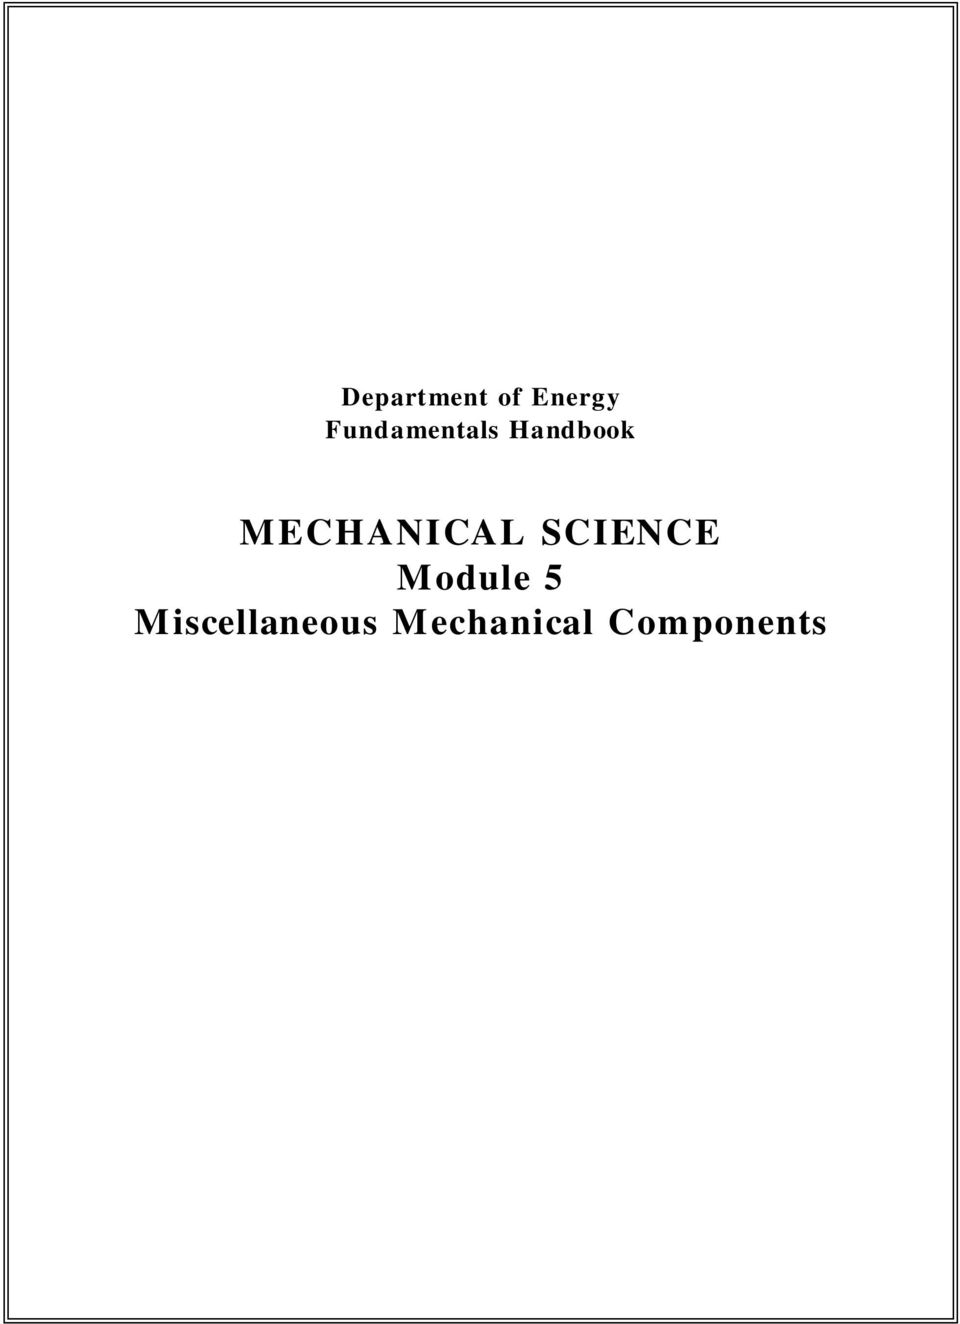 MECHANICAL SCIENCE Module